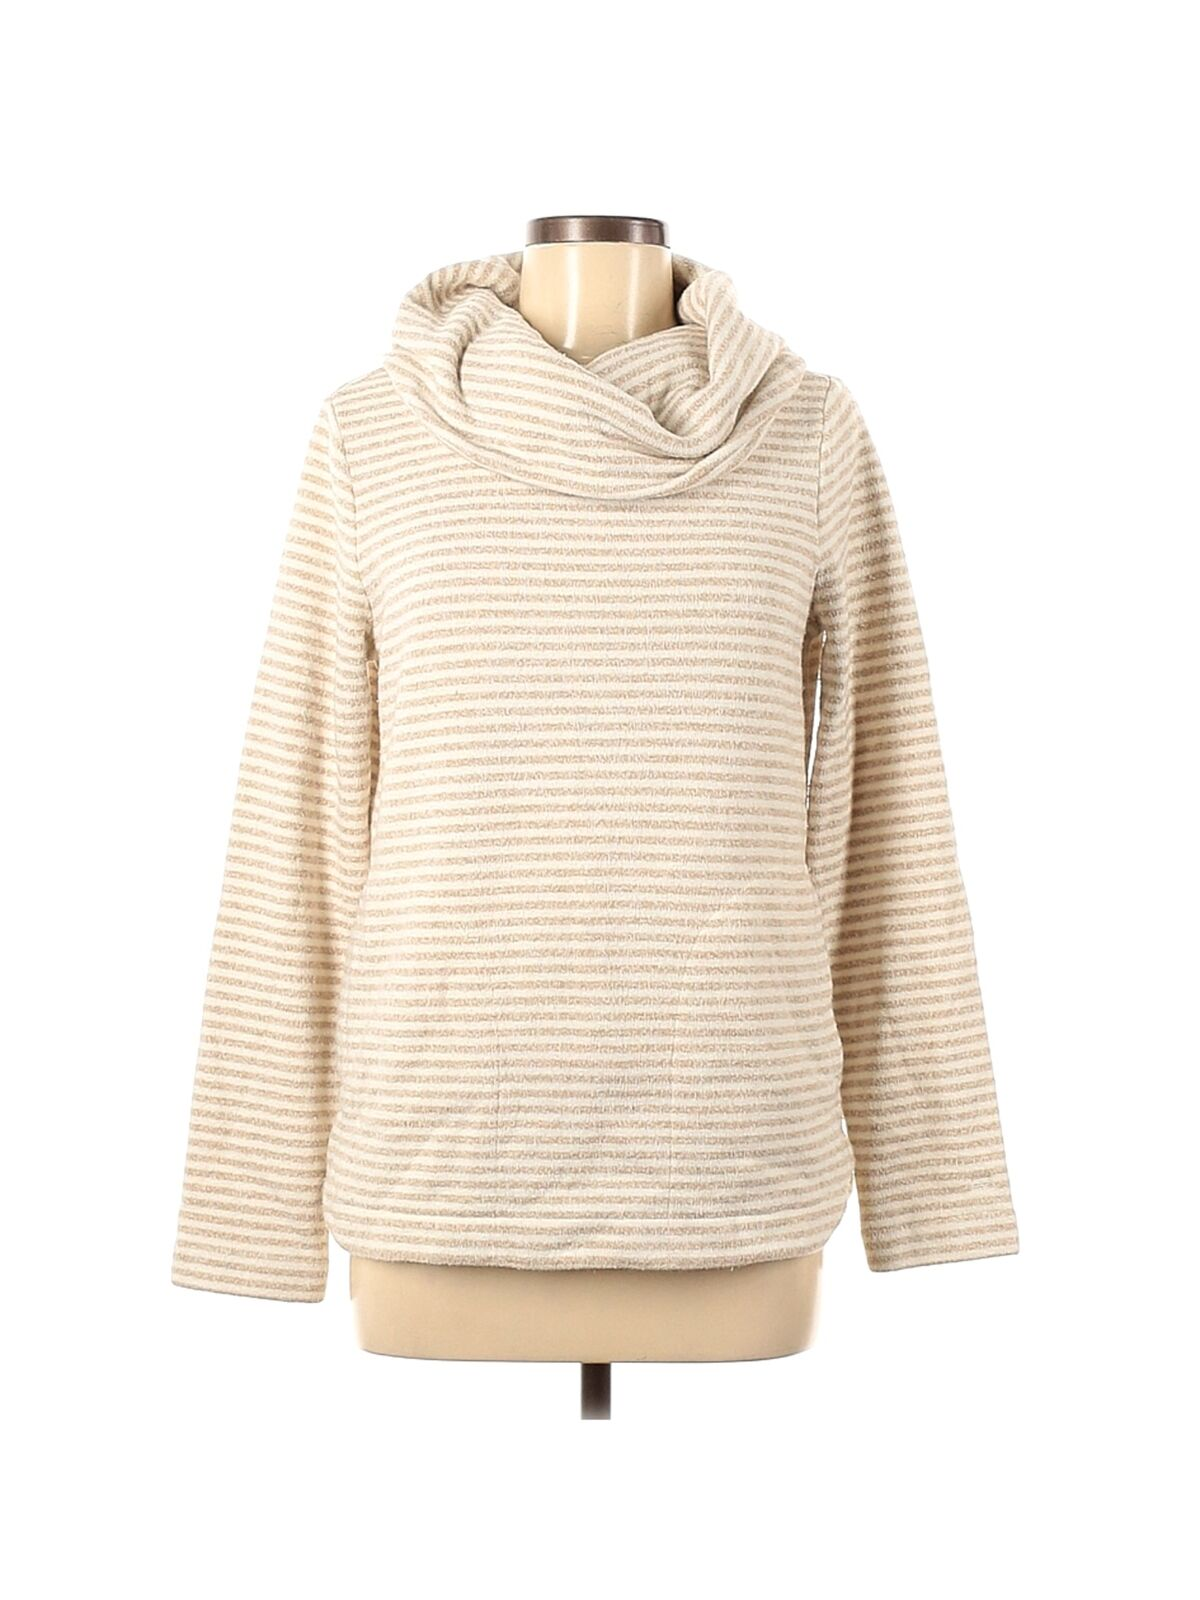 Tommy Hilfiger Women Brown Pullover Sweater S - image 1